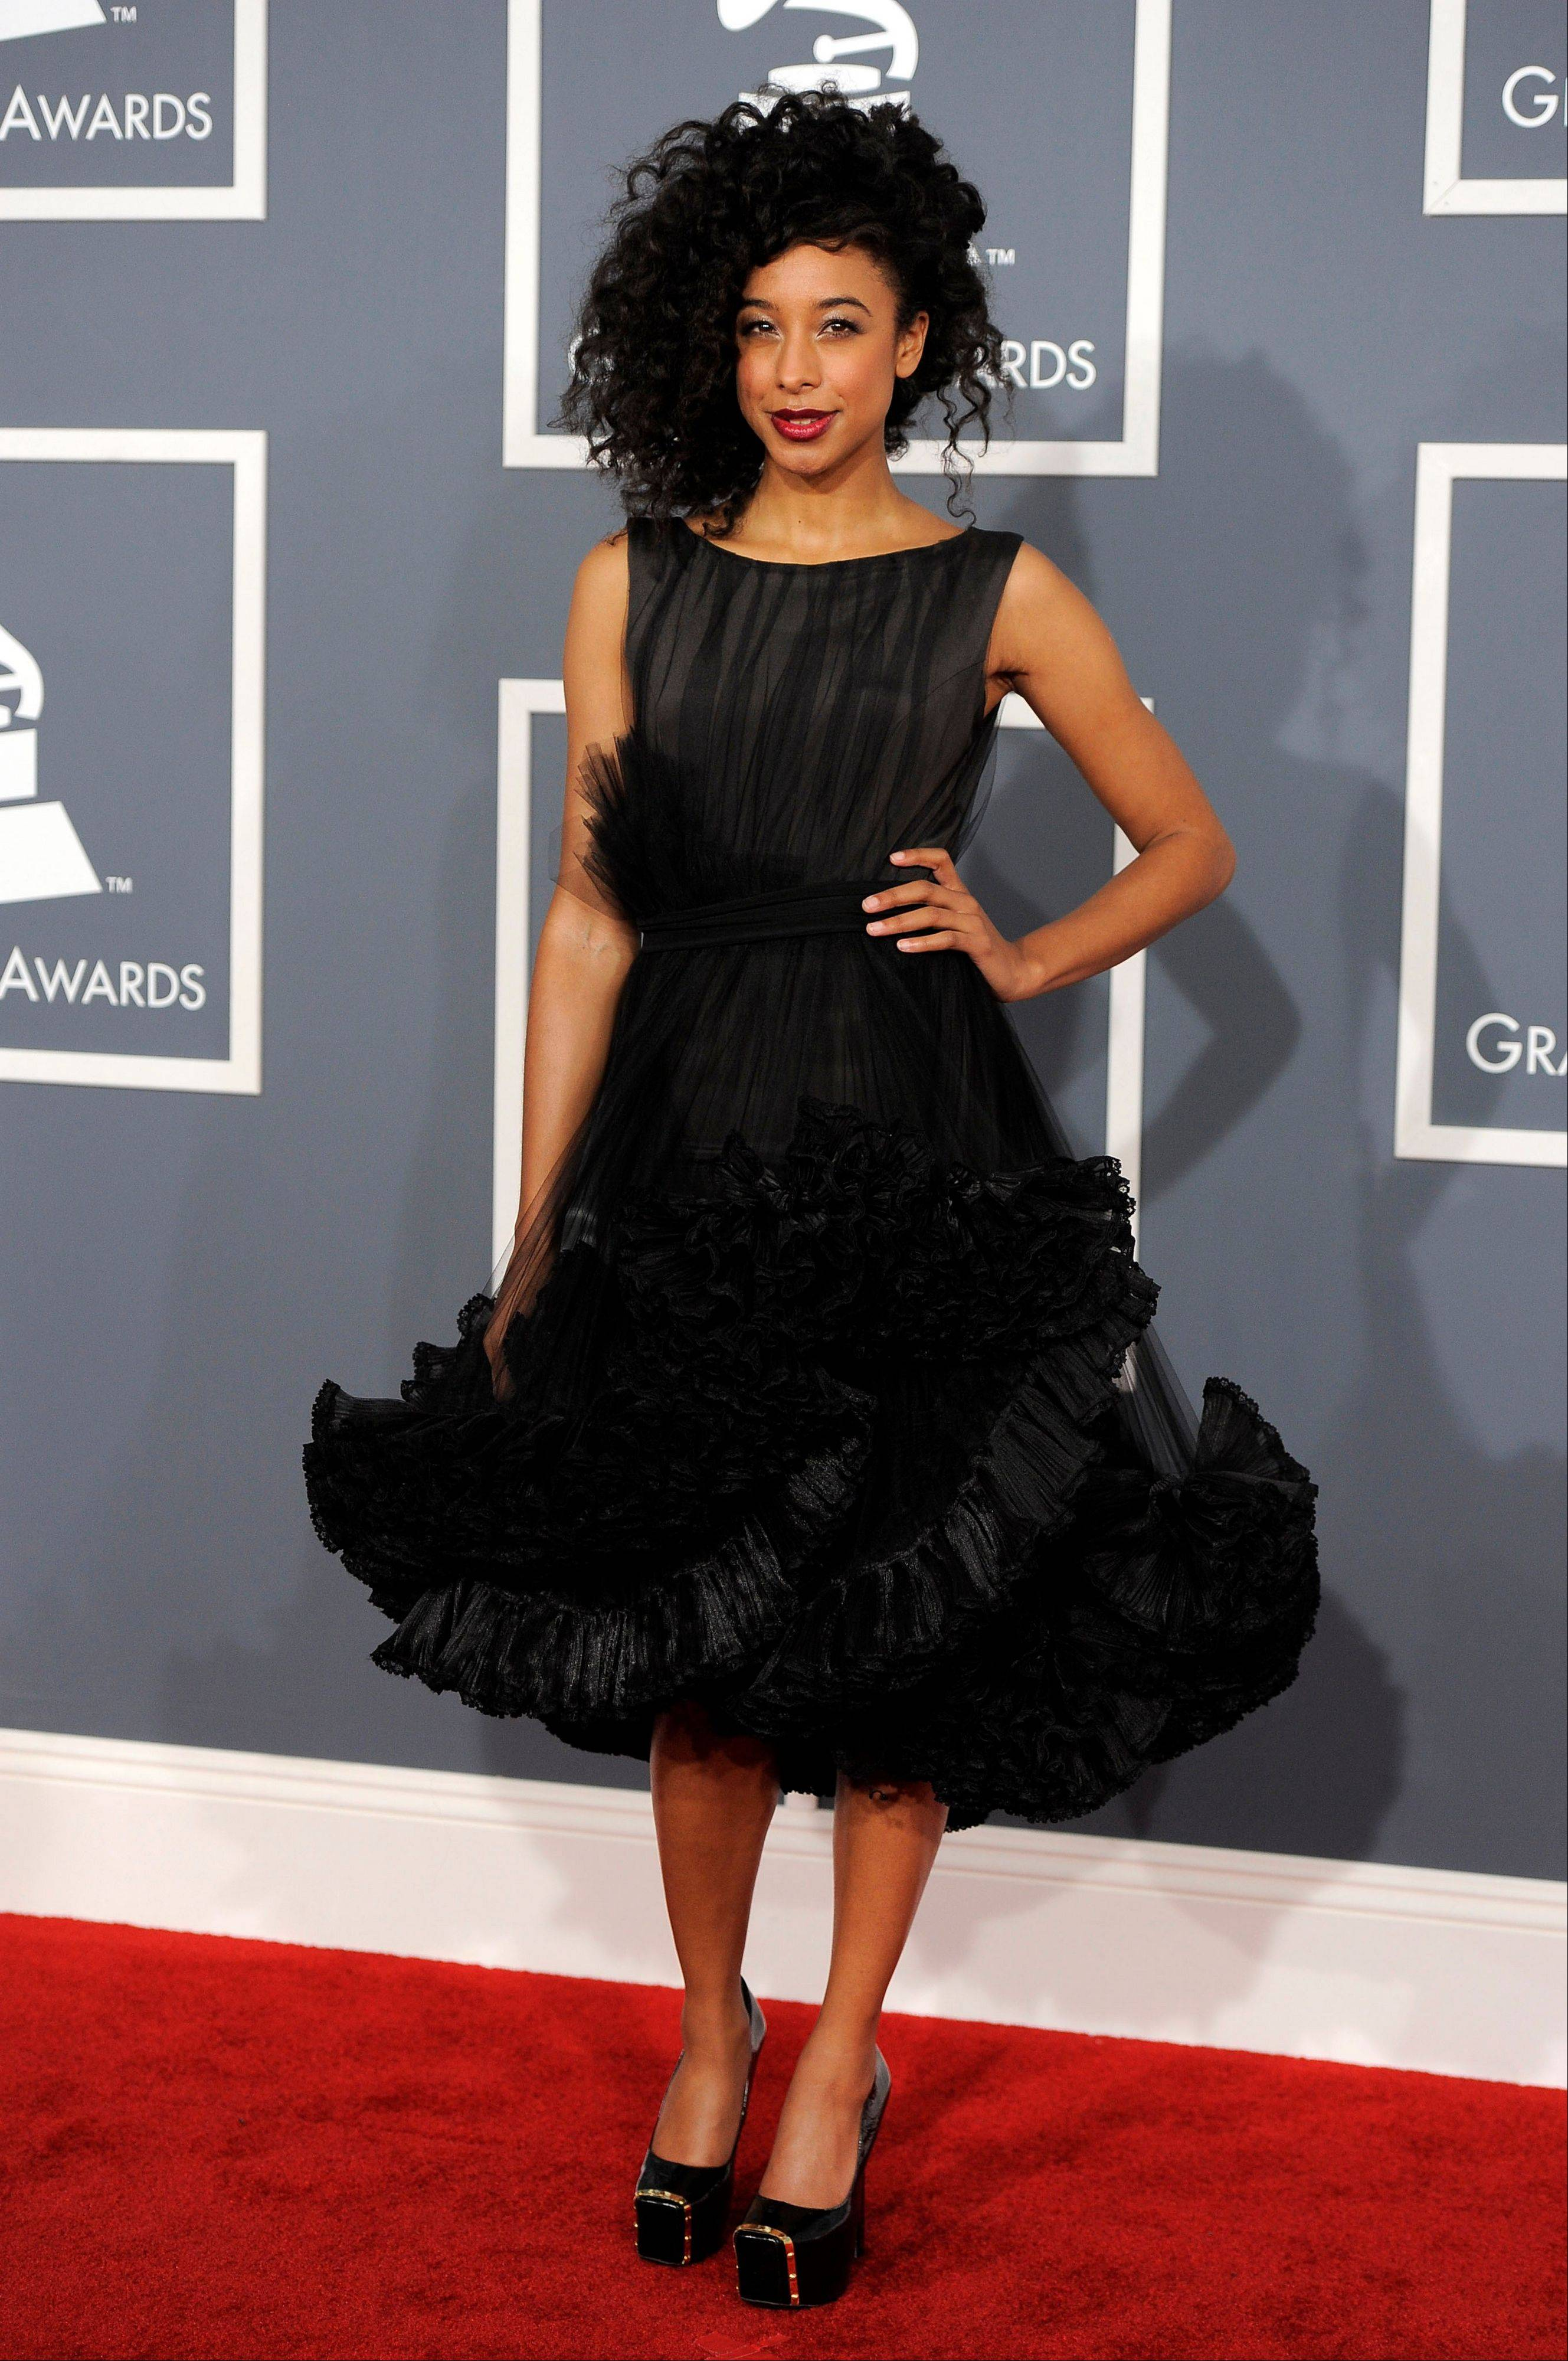 Corinne Bailey Rae arrives Sunday at the 54th annual Grammy Awards in Los Angeles.